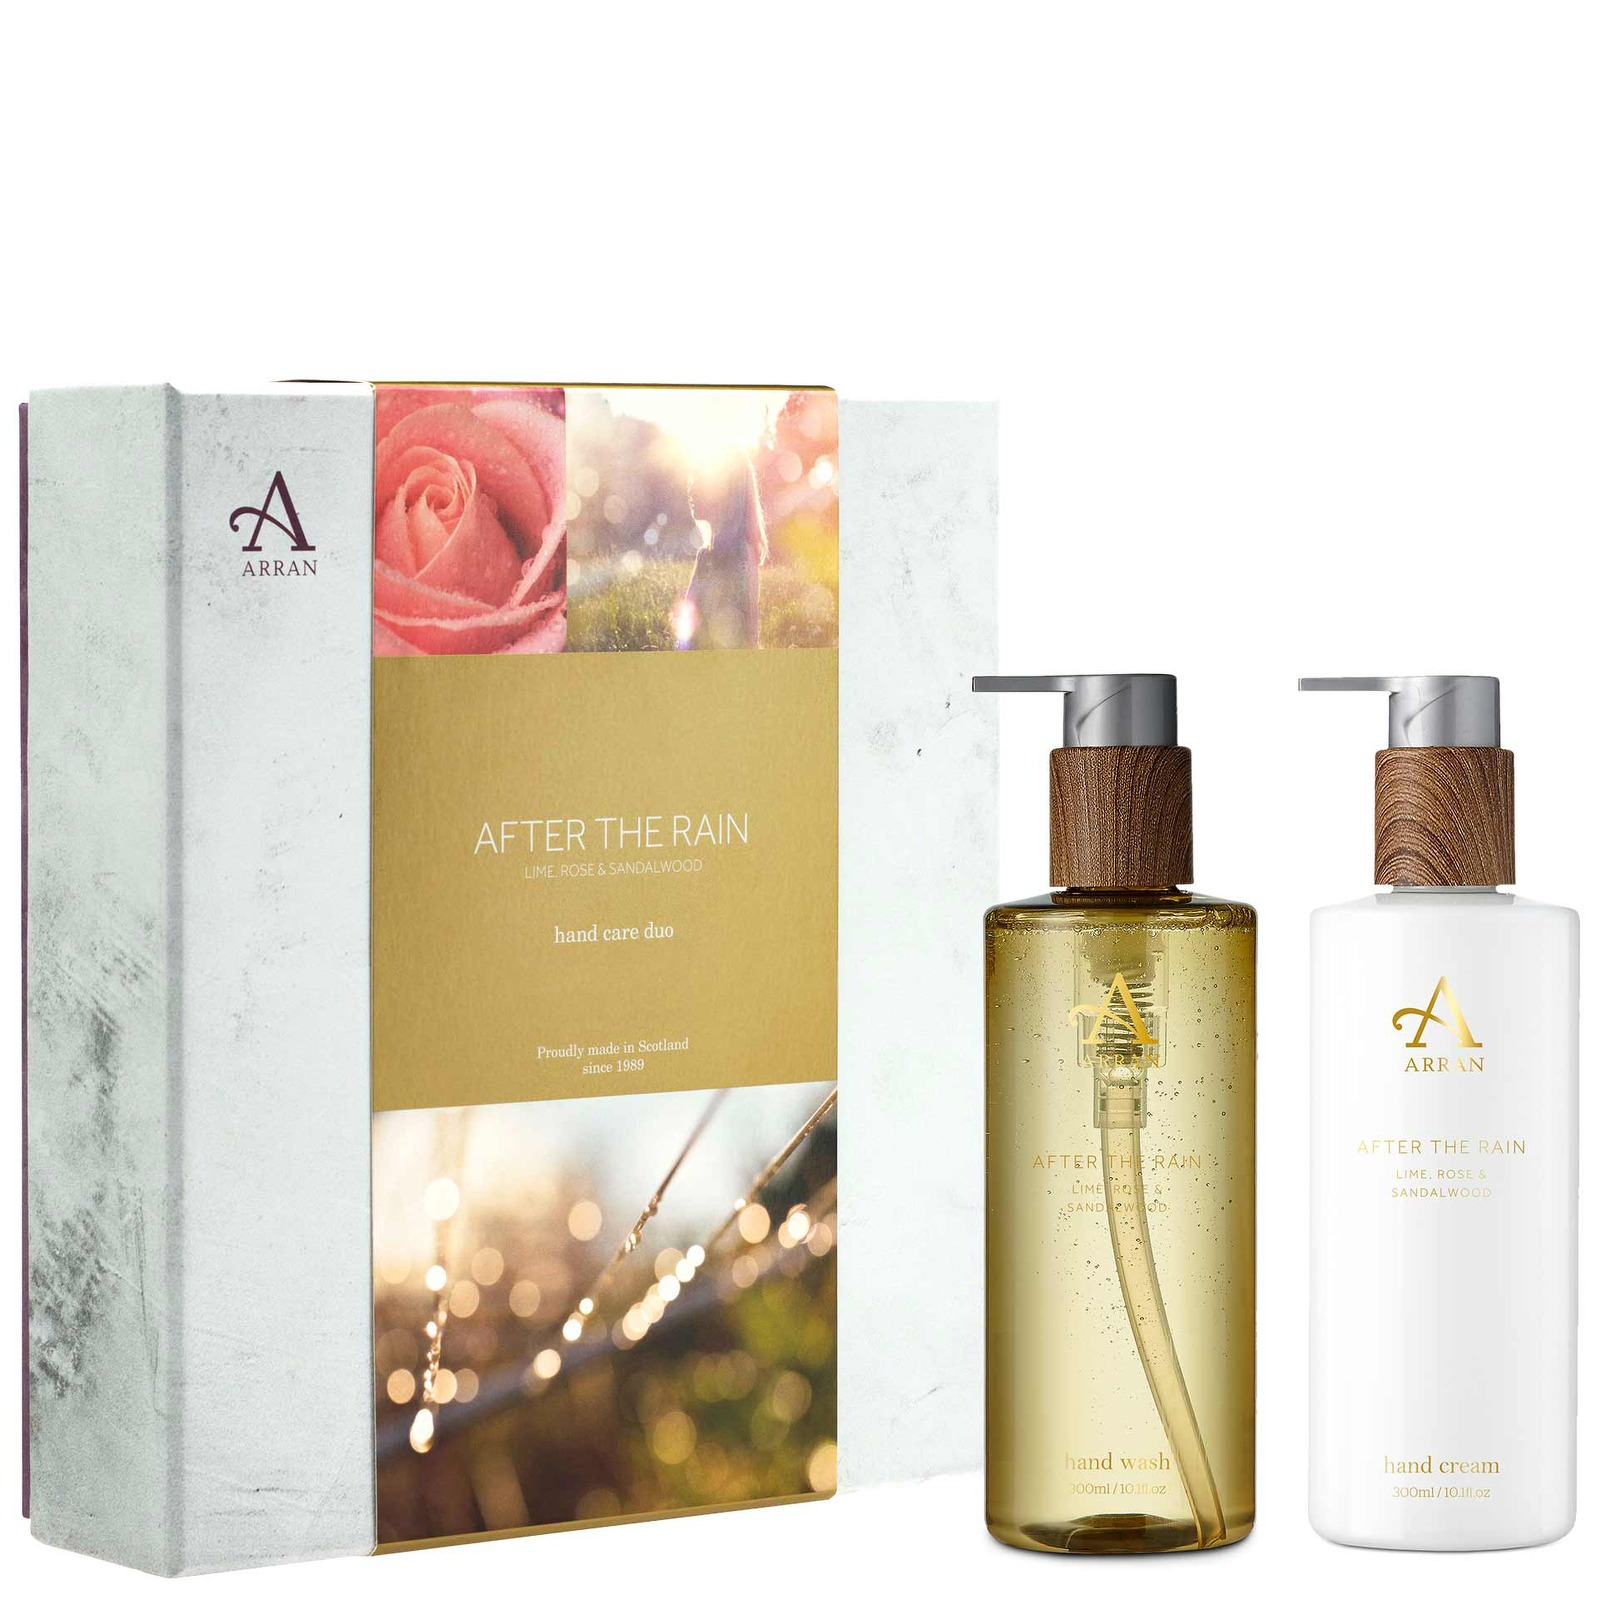 ARRAN Sense of Scotland Gifts After The Rain Hand Care Gift Set